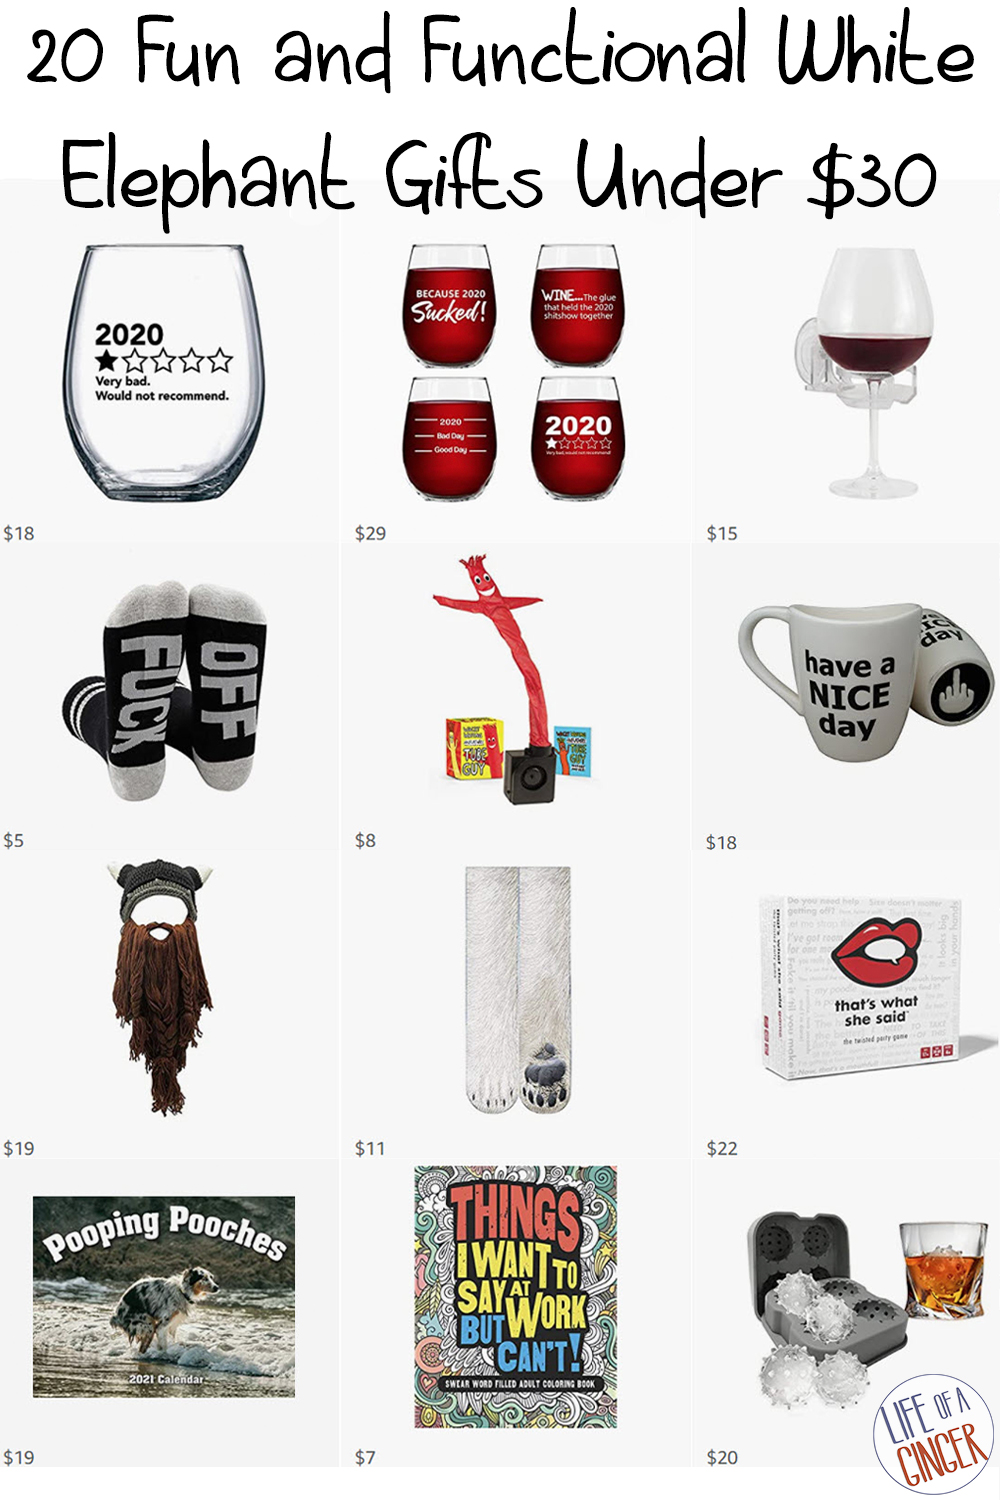 20 Fun and Functional White Elephant Gifts Under $30